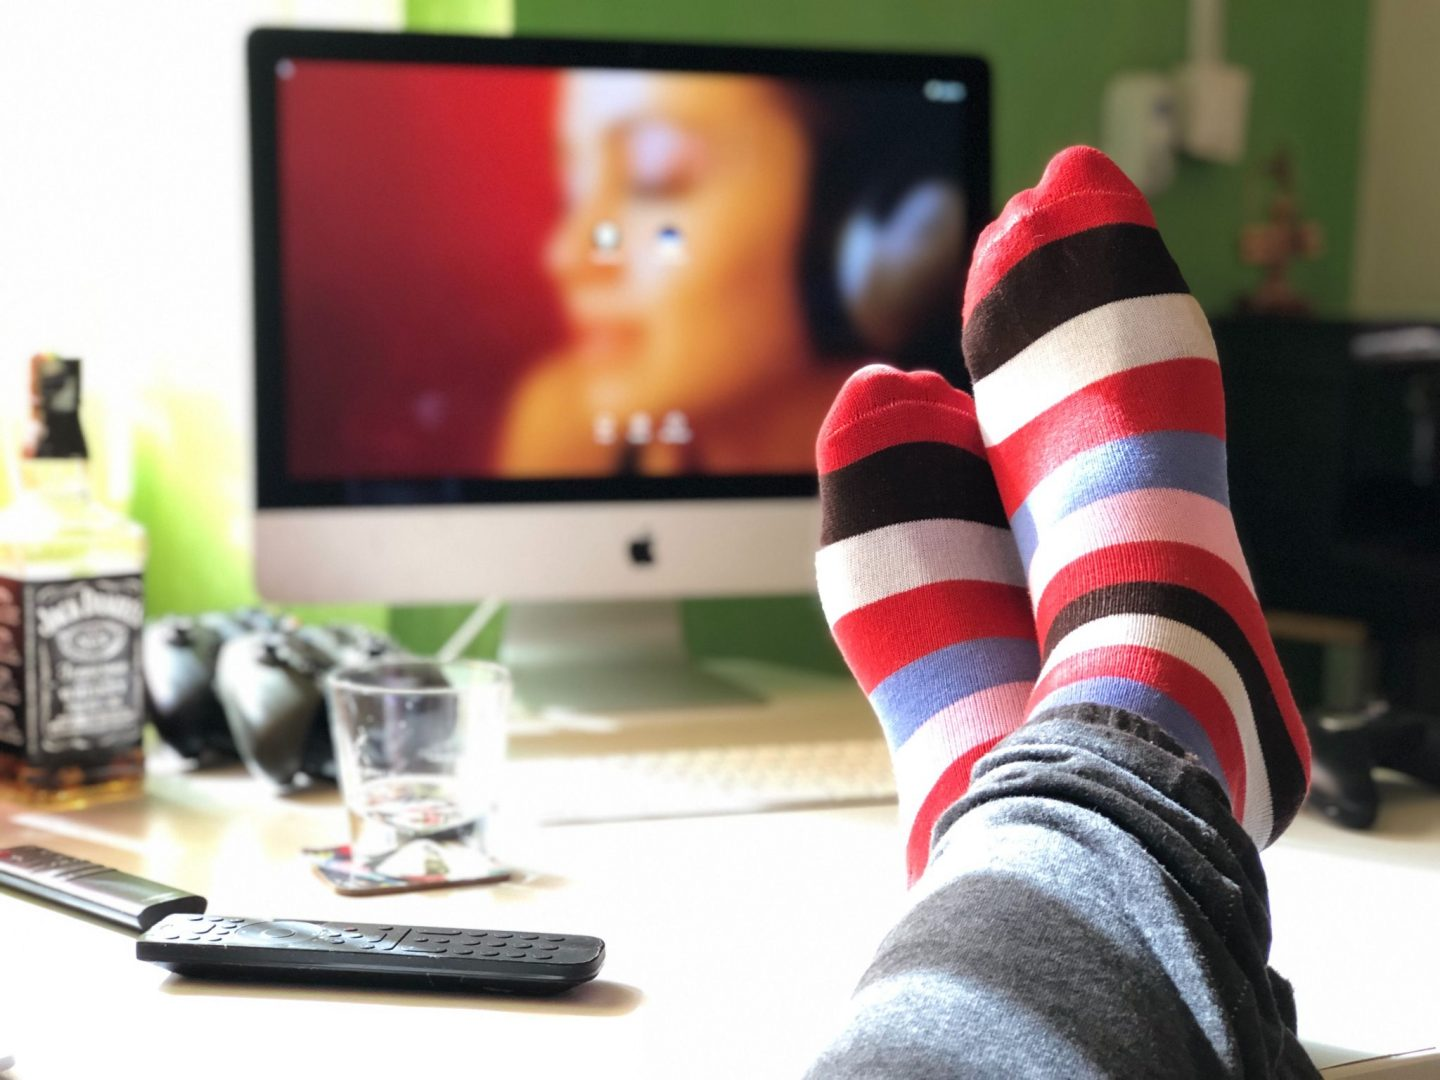 THE HISTORY OF THE COMPRESSION SOCK